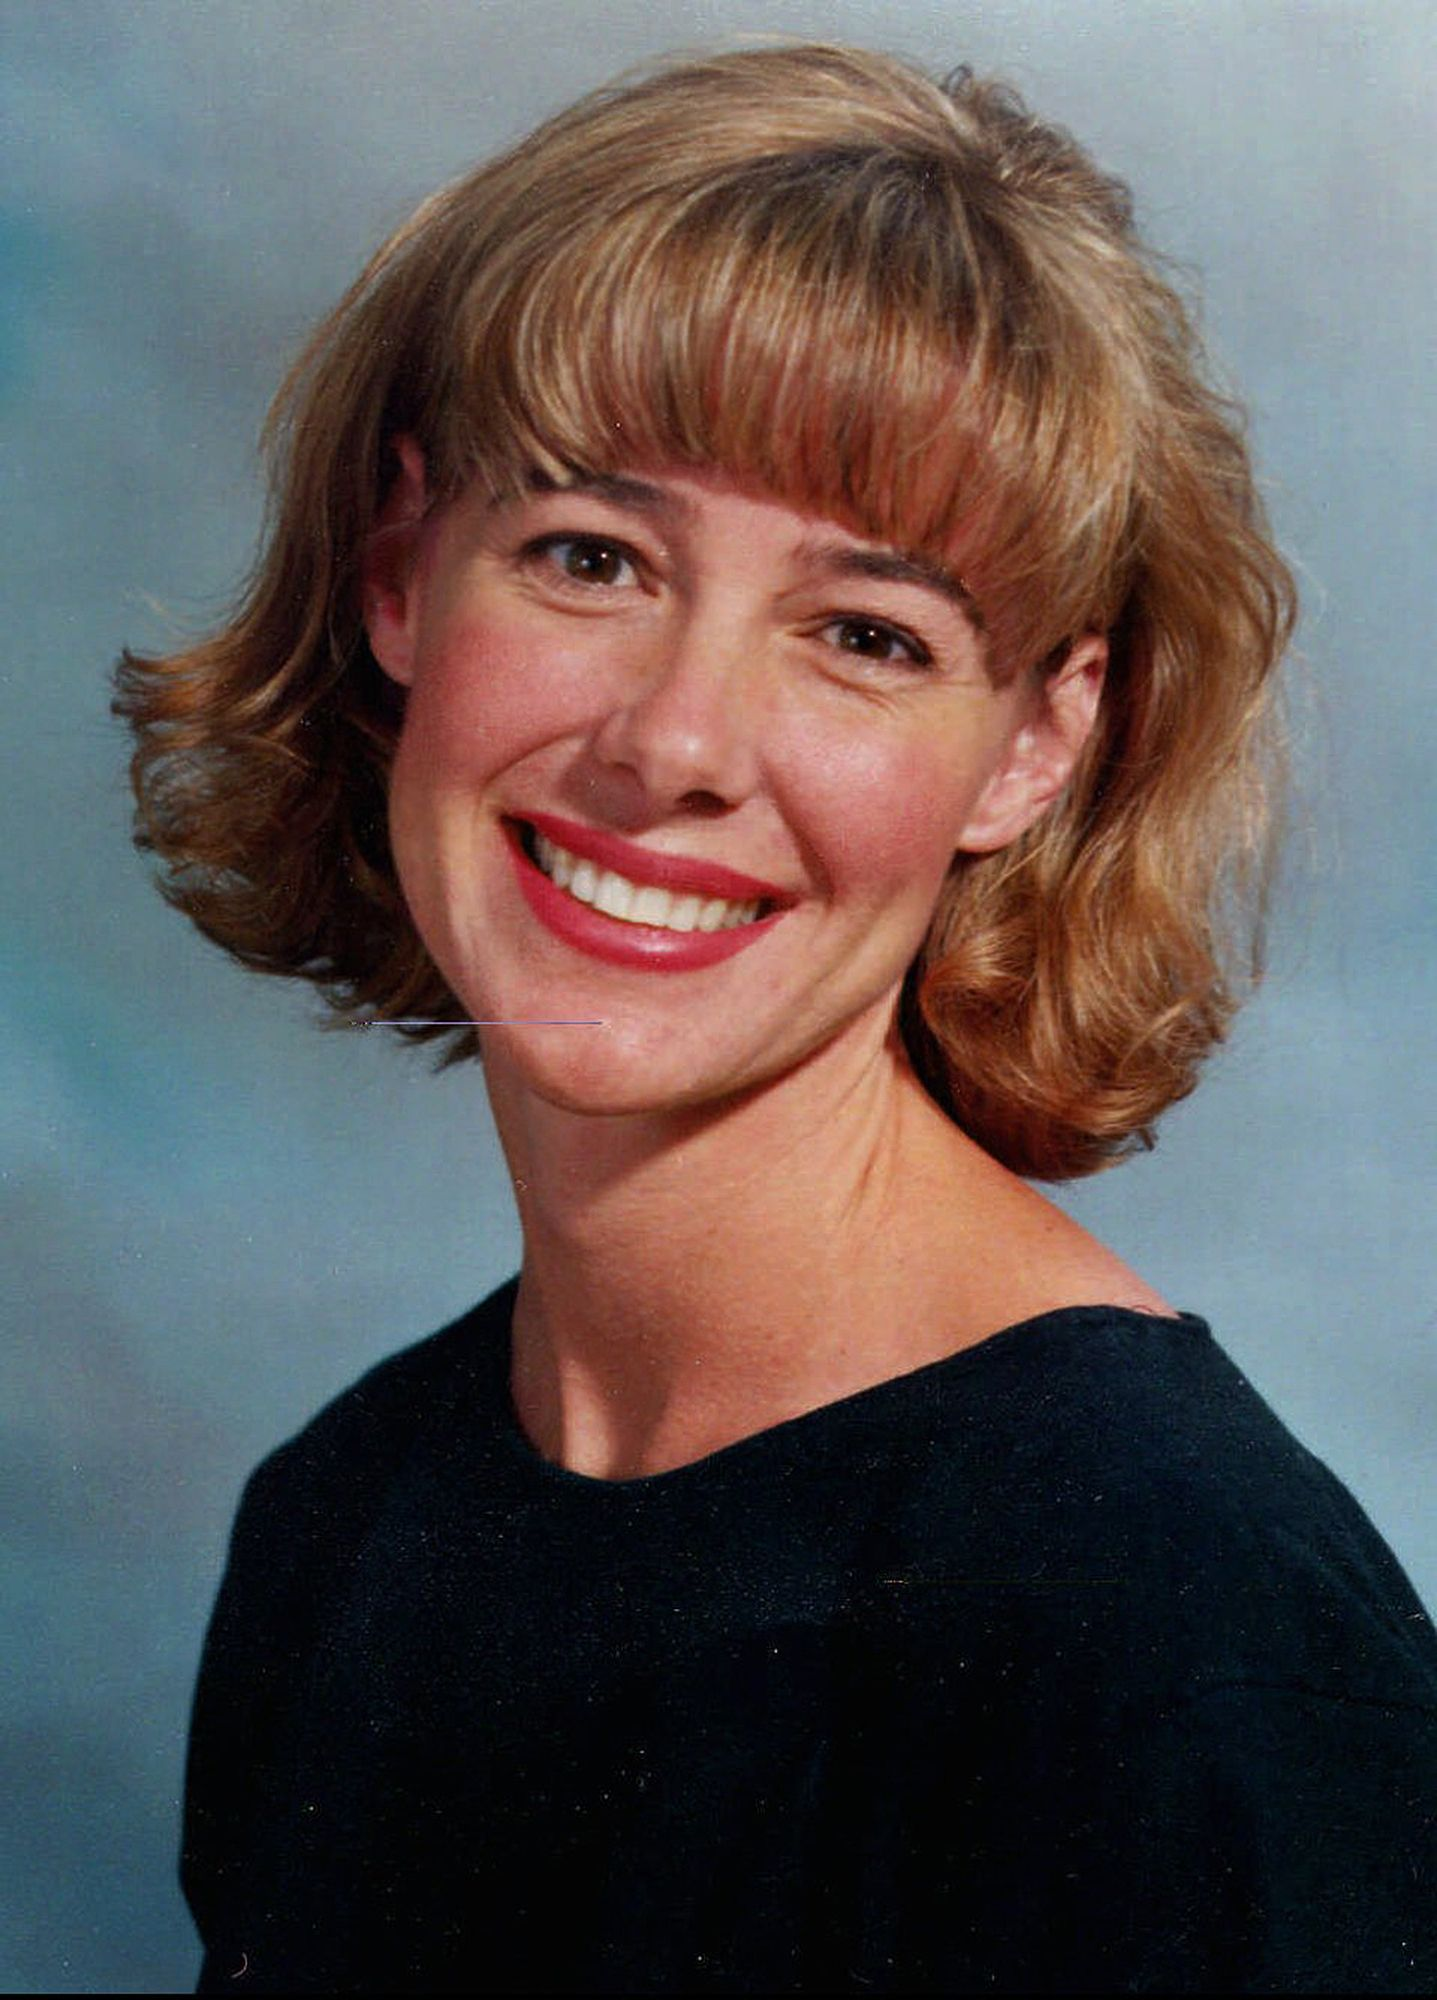 Mary Kay Letourneau headshot